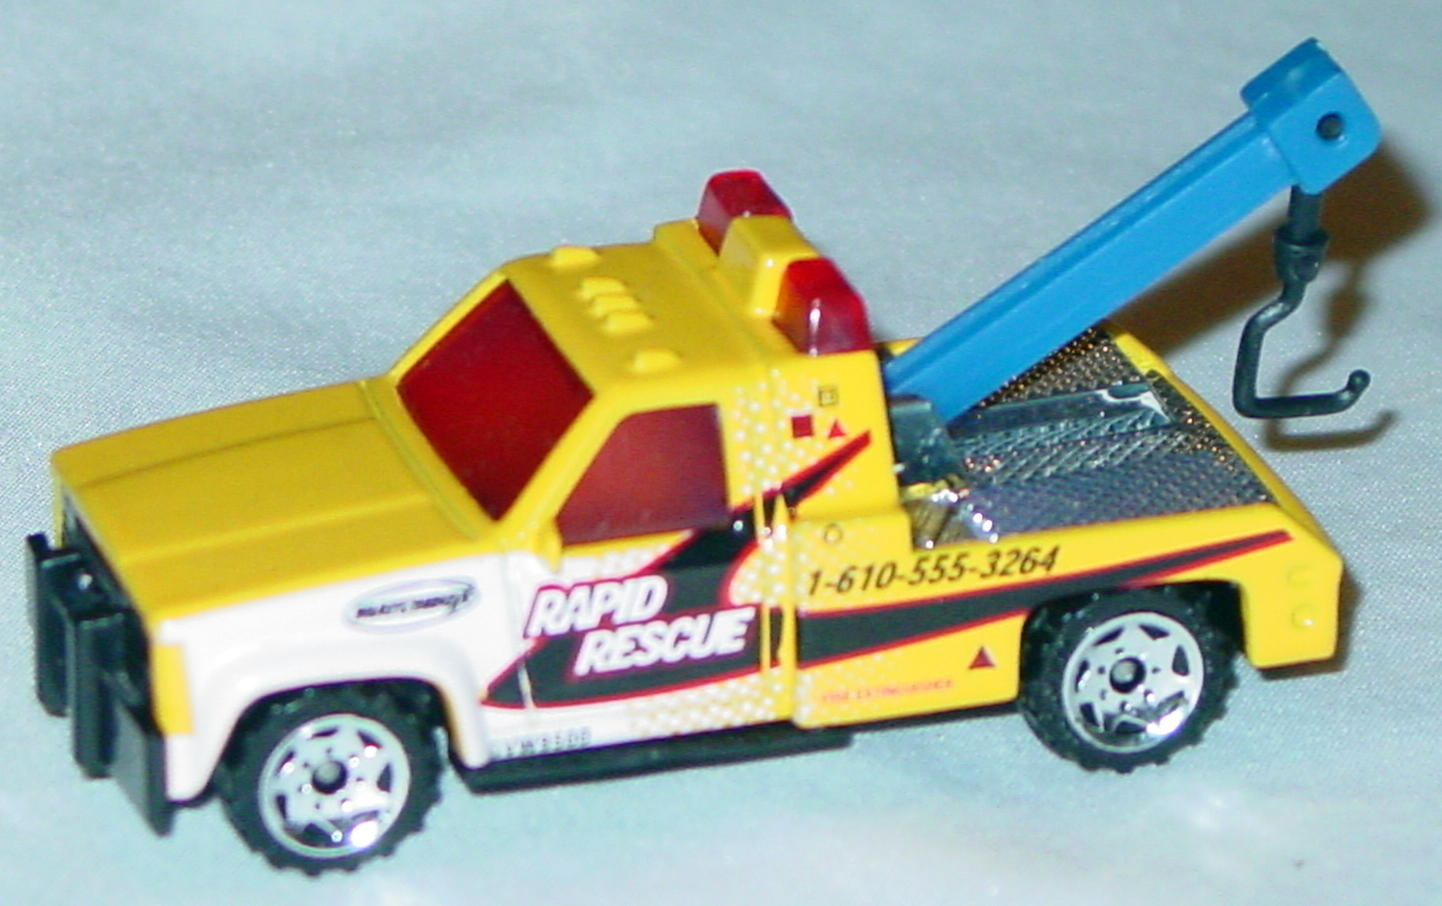 Offshore SuperFast 21 F 42 - PLAYSET GMC Wrecker Yellow Rapid Rescue made in China